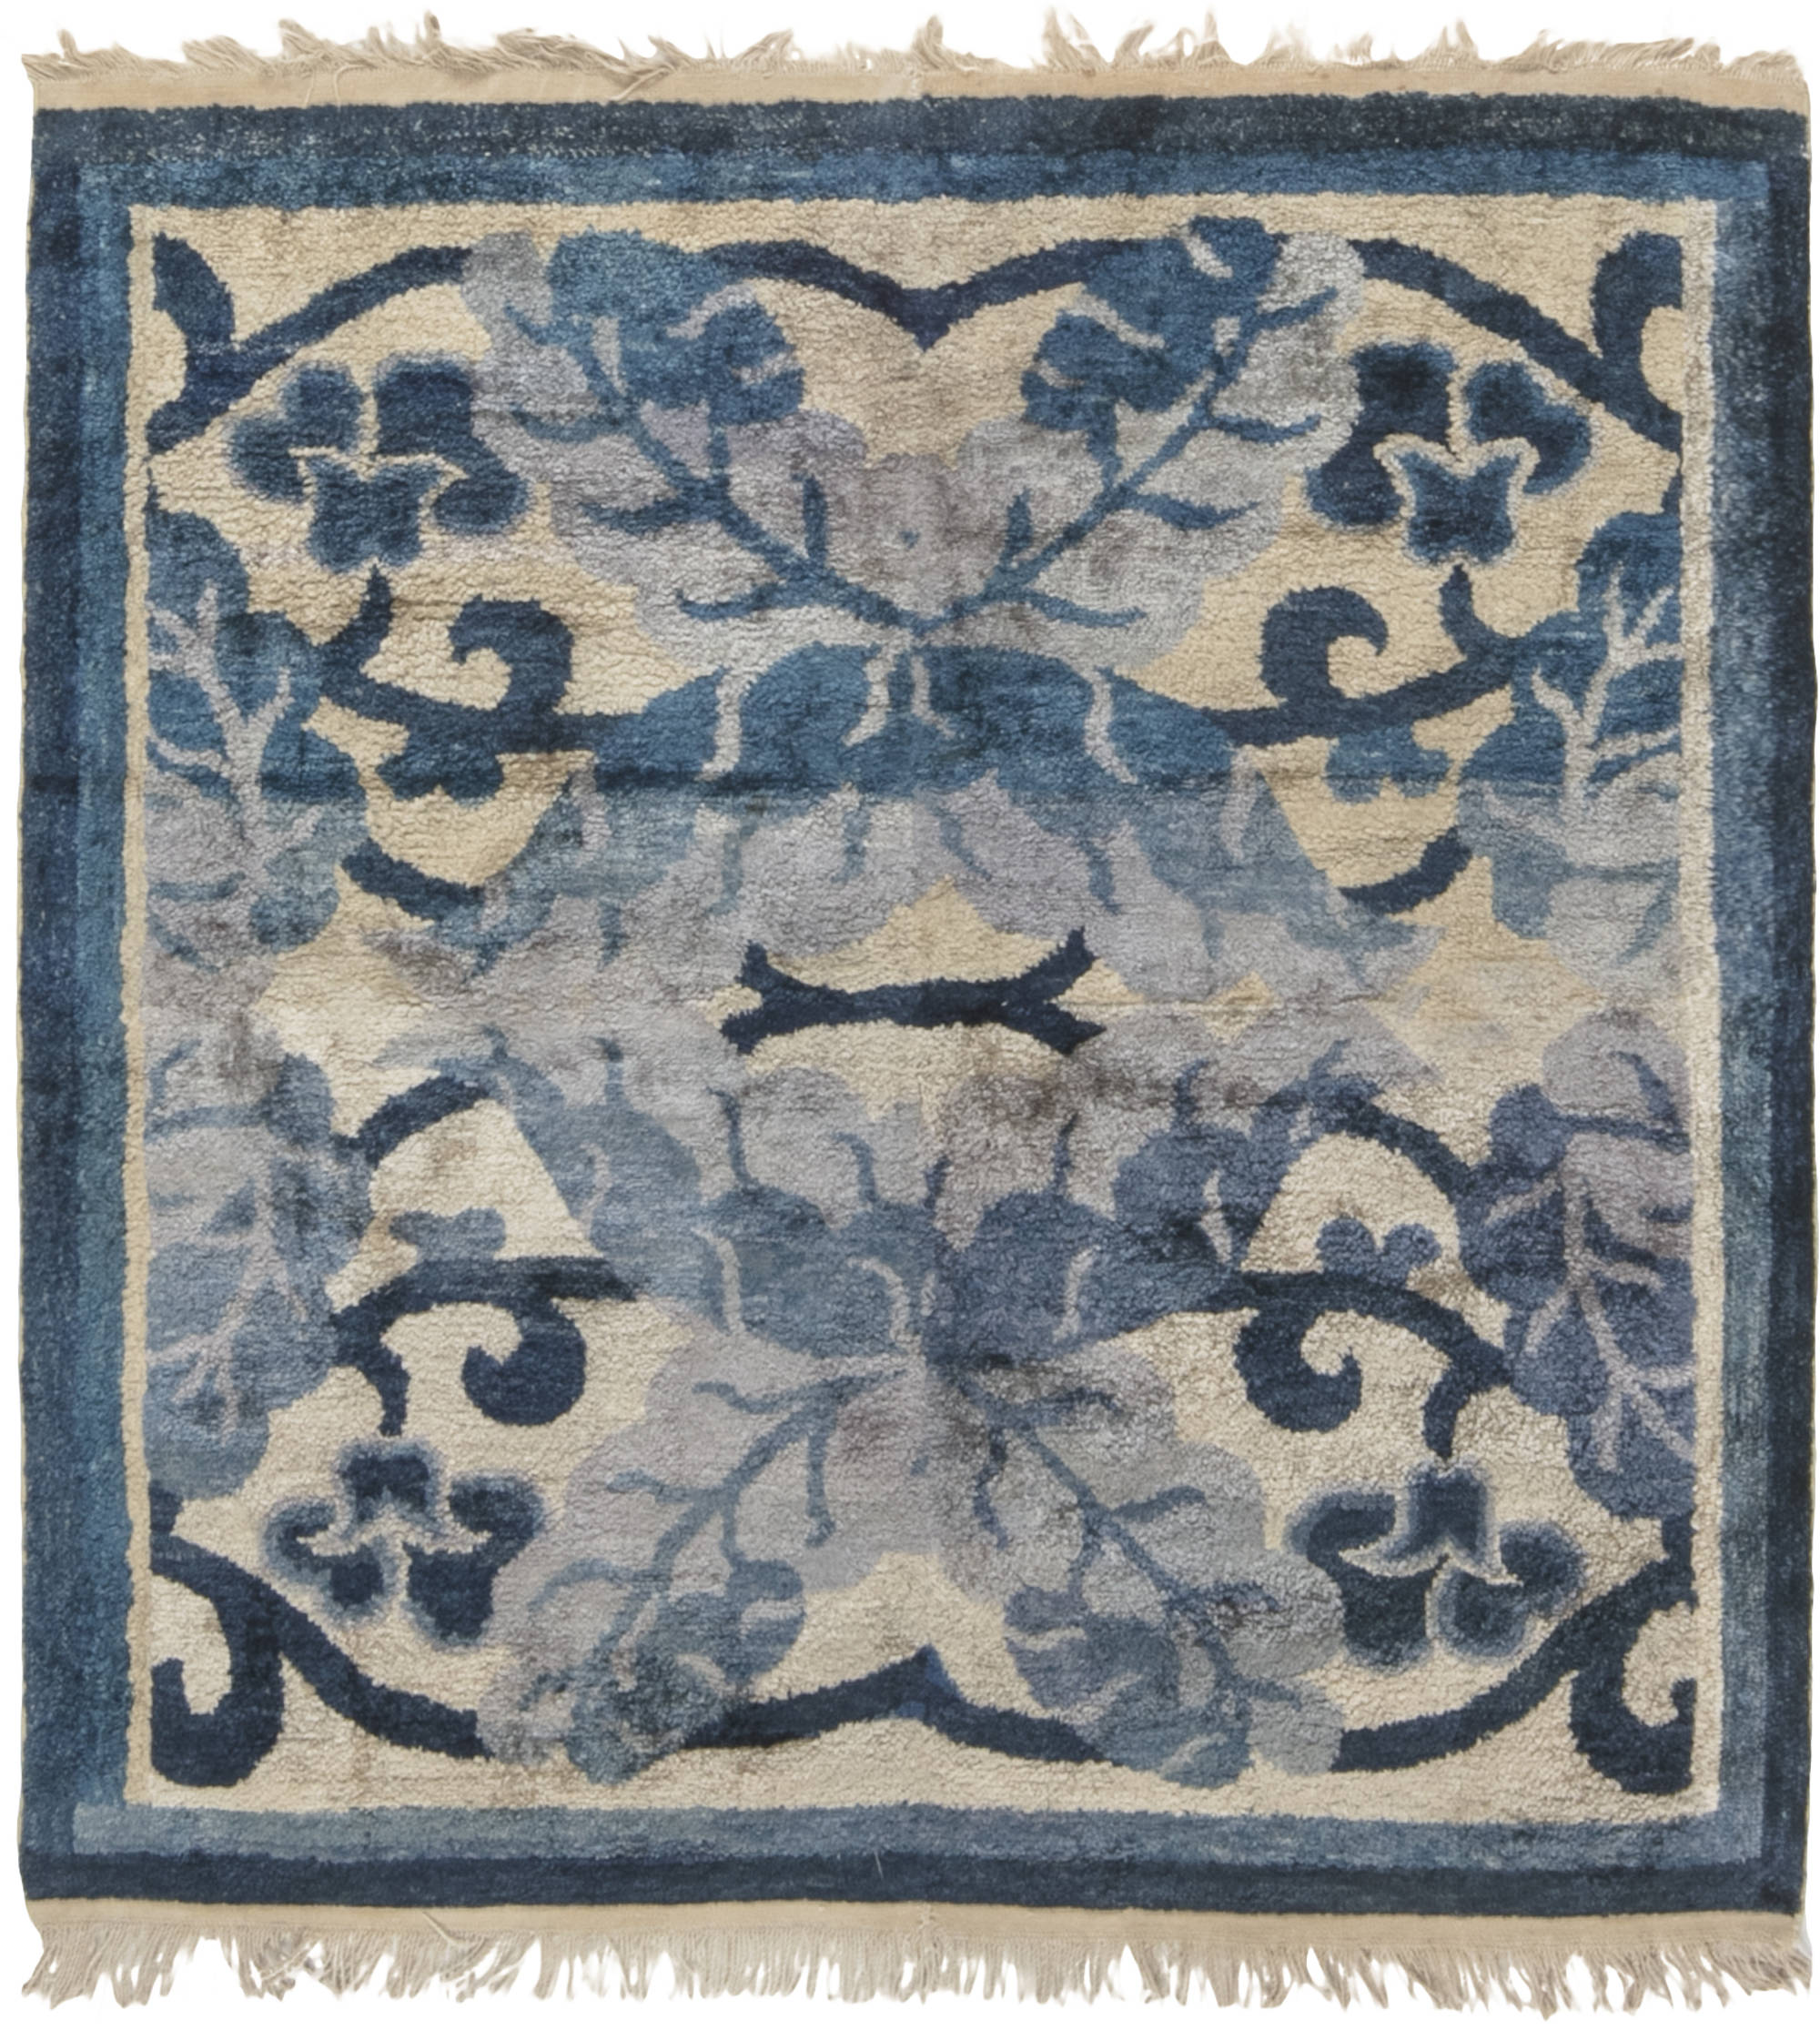 Antique Chinese Rug: Antique Chinese (fragment) BB6507 By Doris Leslie Blau